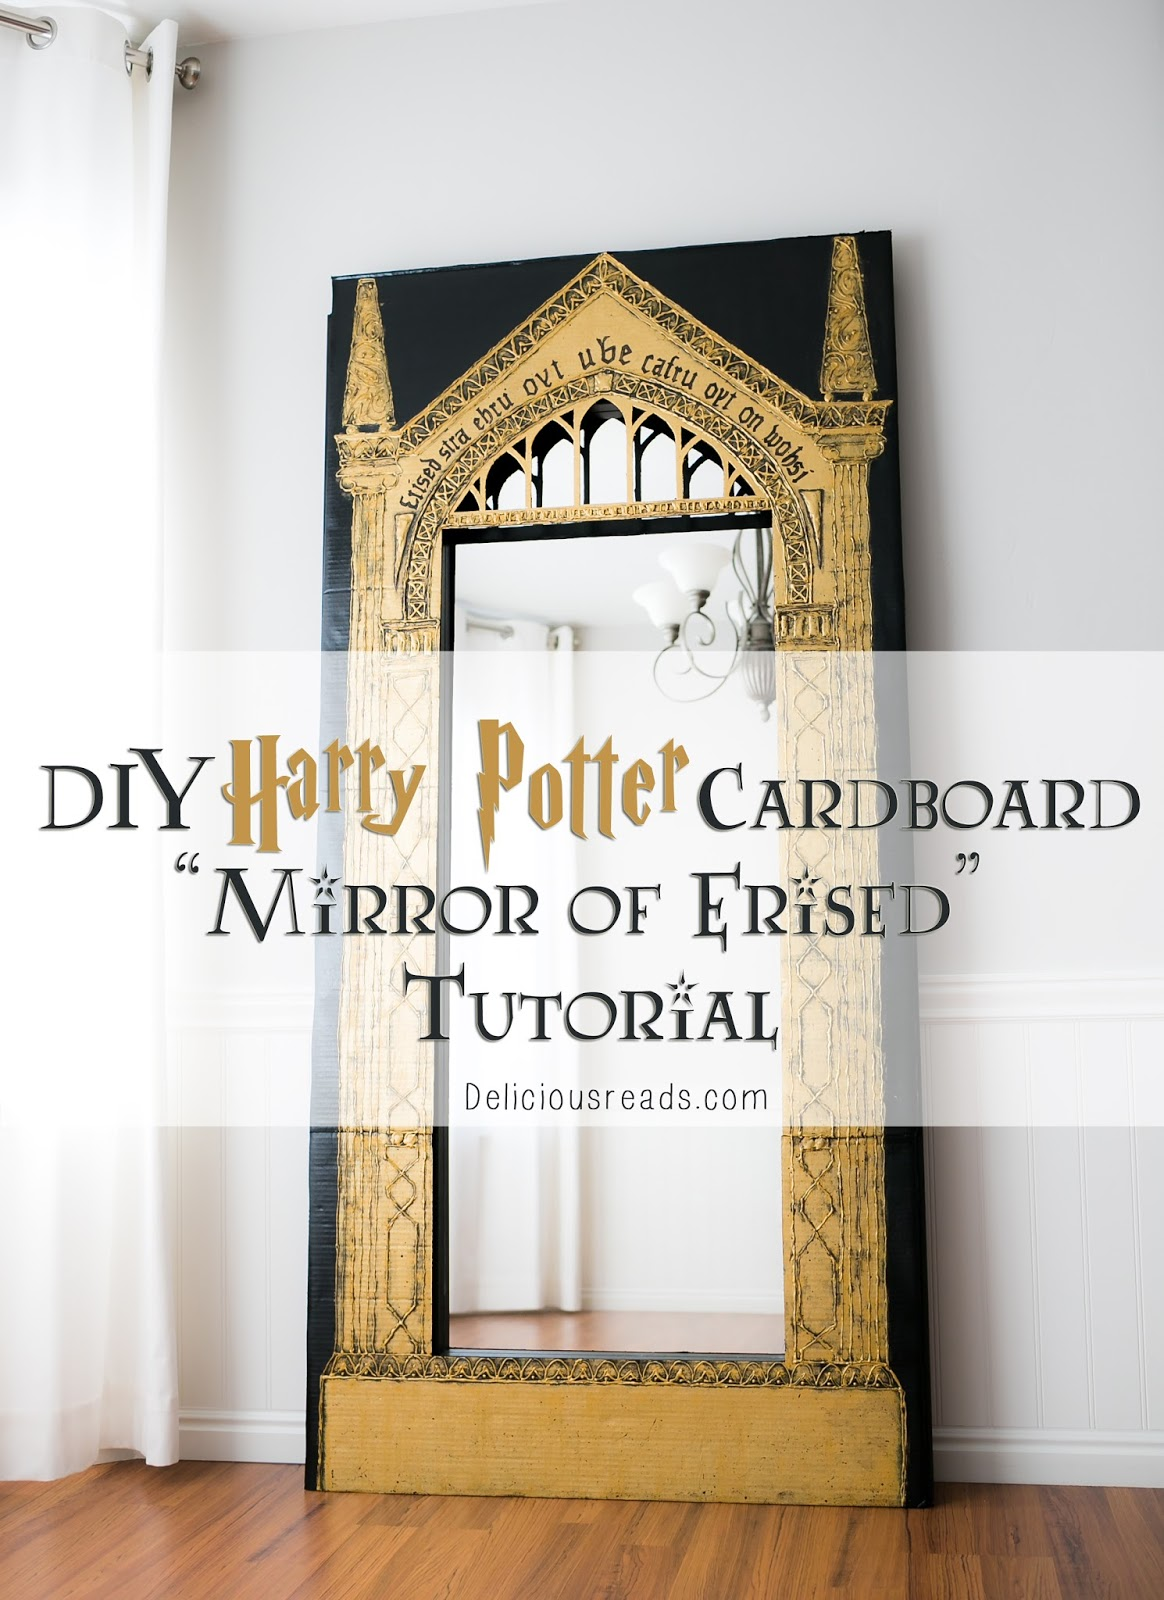 Delicious Reads: DIY Harry Potter Cardboard \